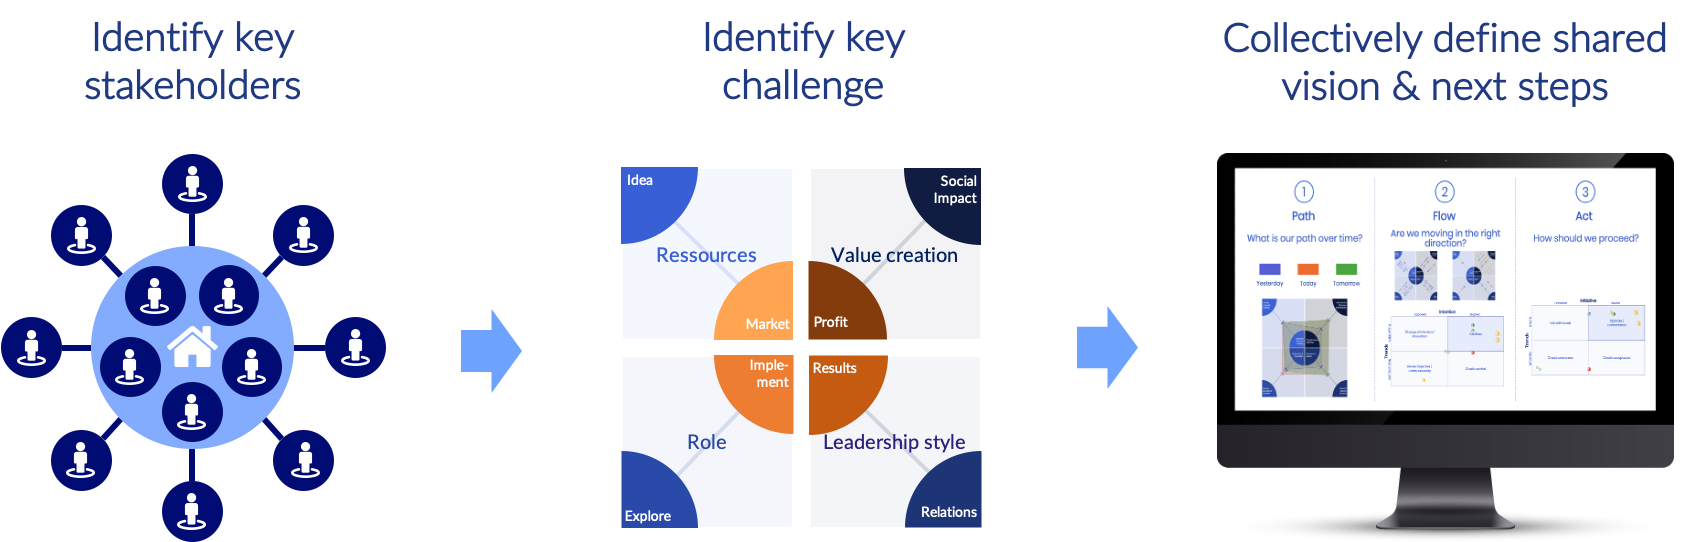 Stakeholder alignment - process